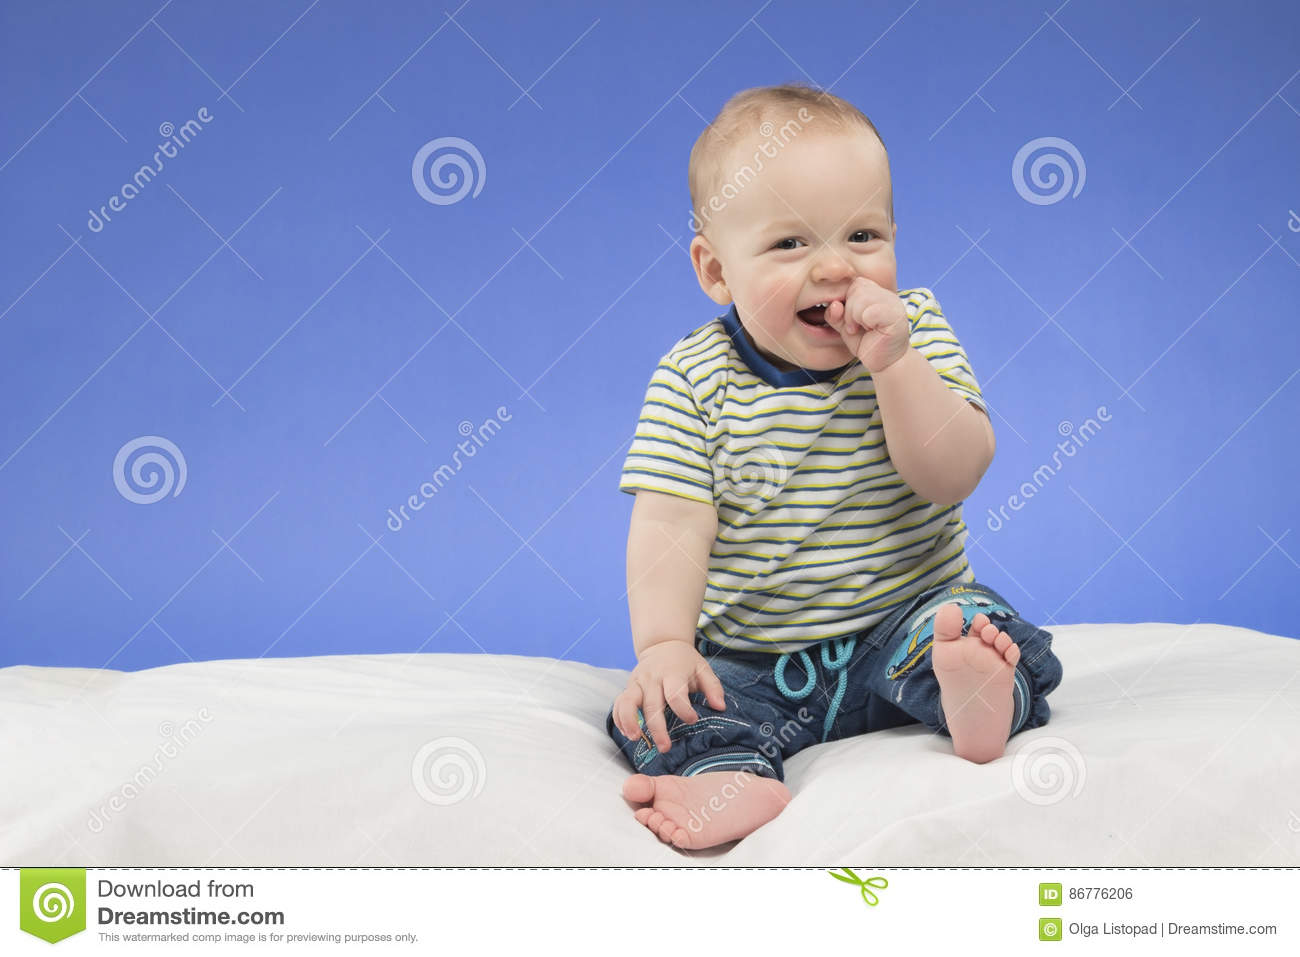 Laughing 8 month old baby boy sitting on the white blanket studio